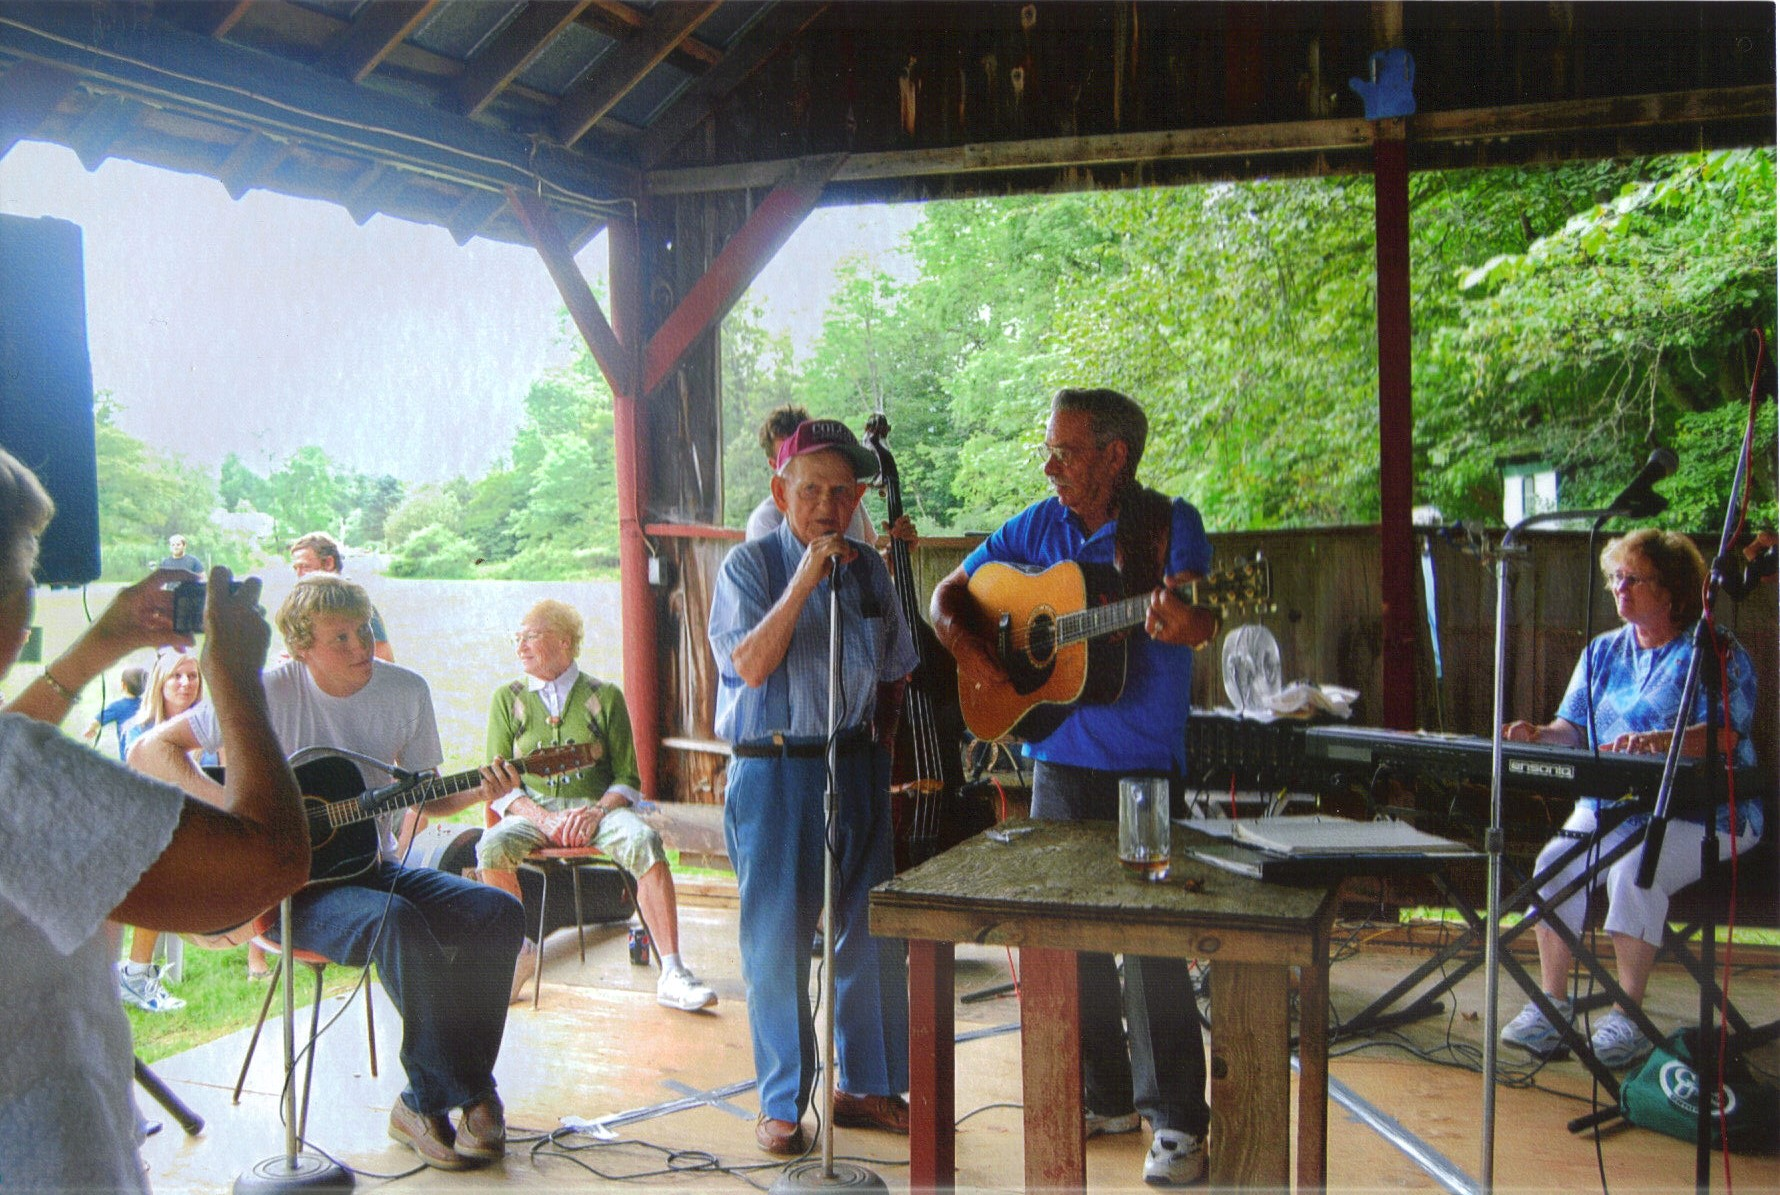 Tinker Hollow Cook Family Music